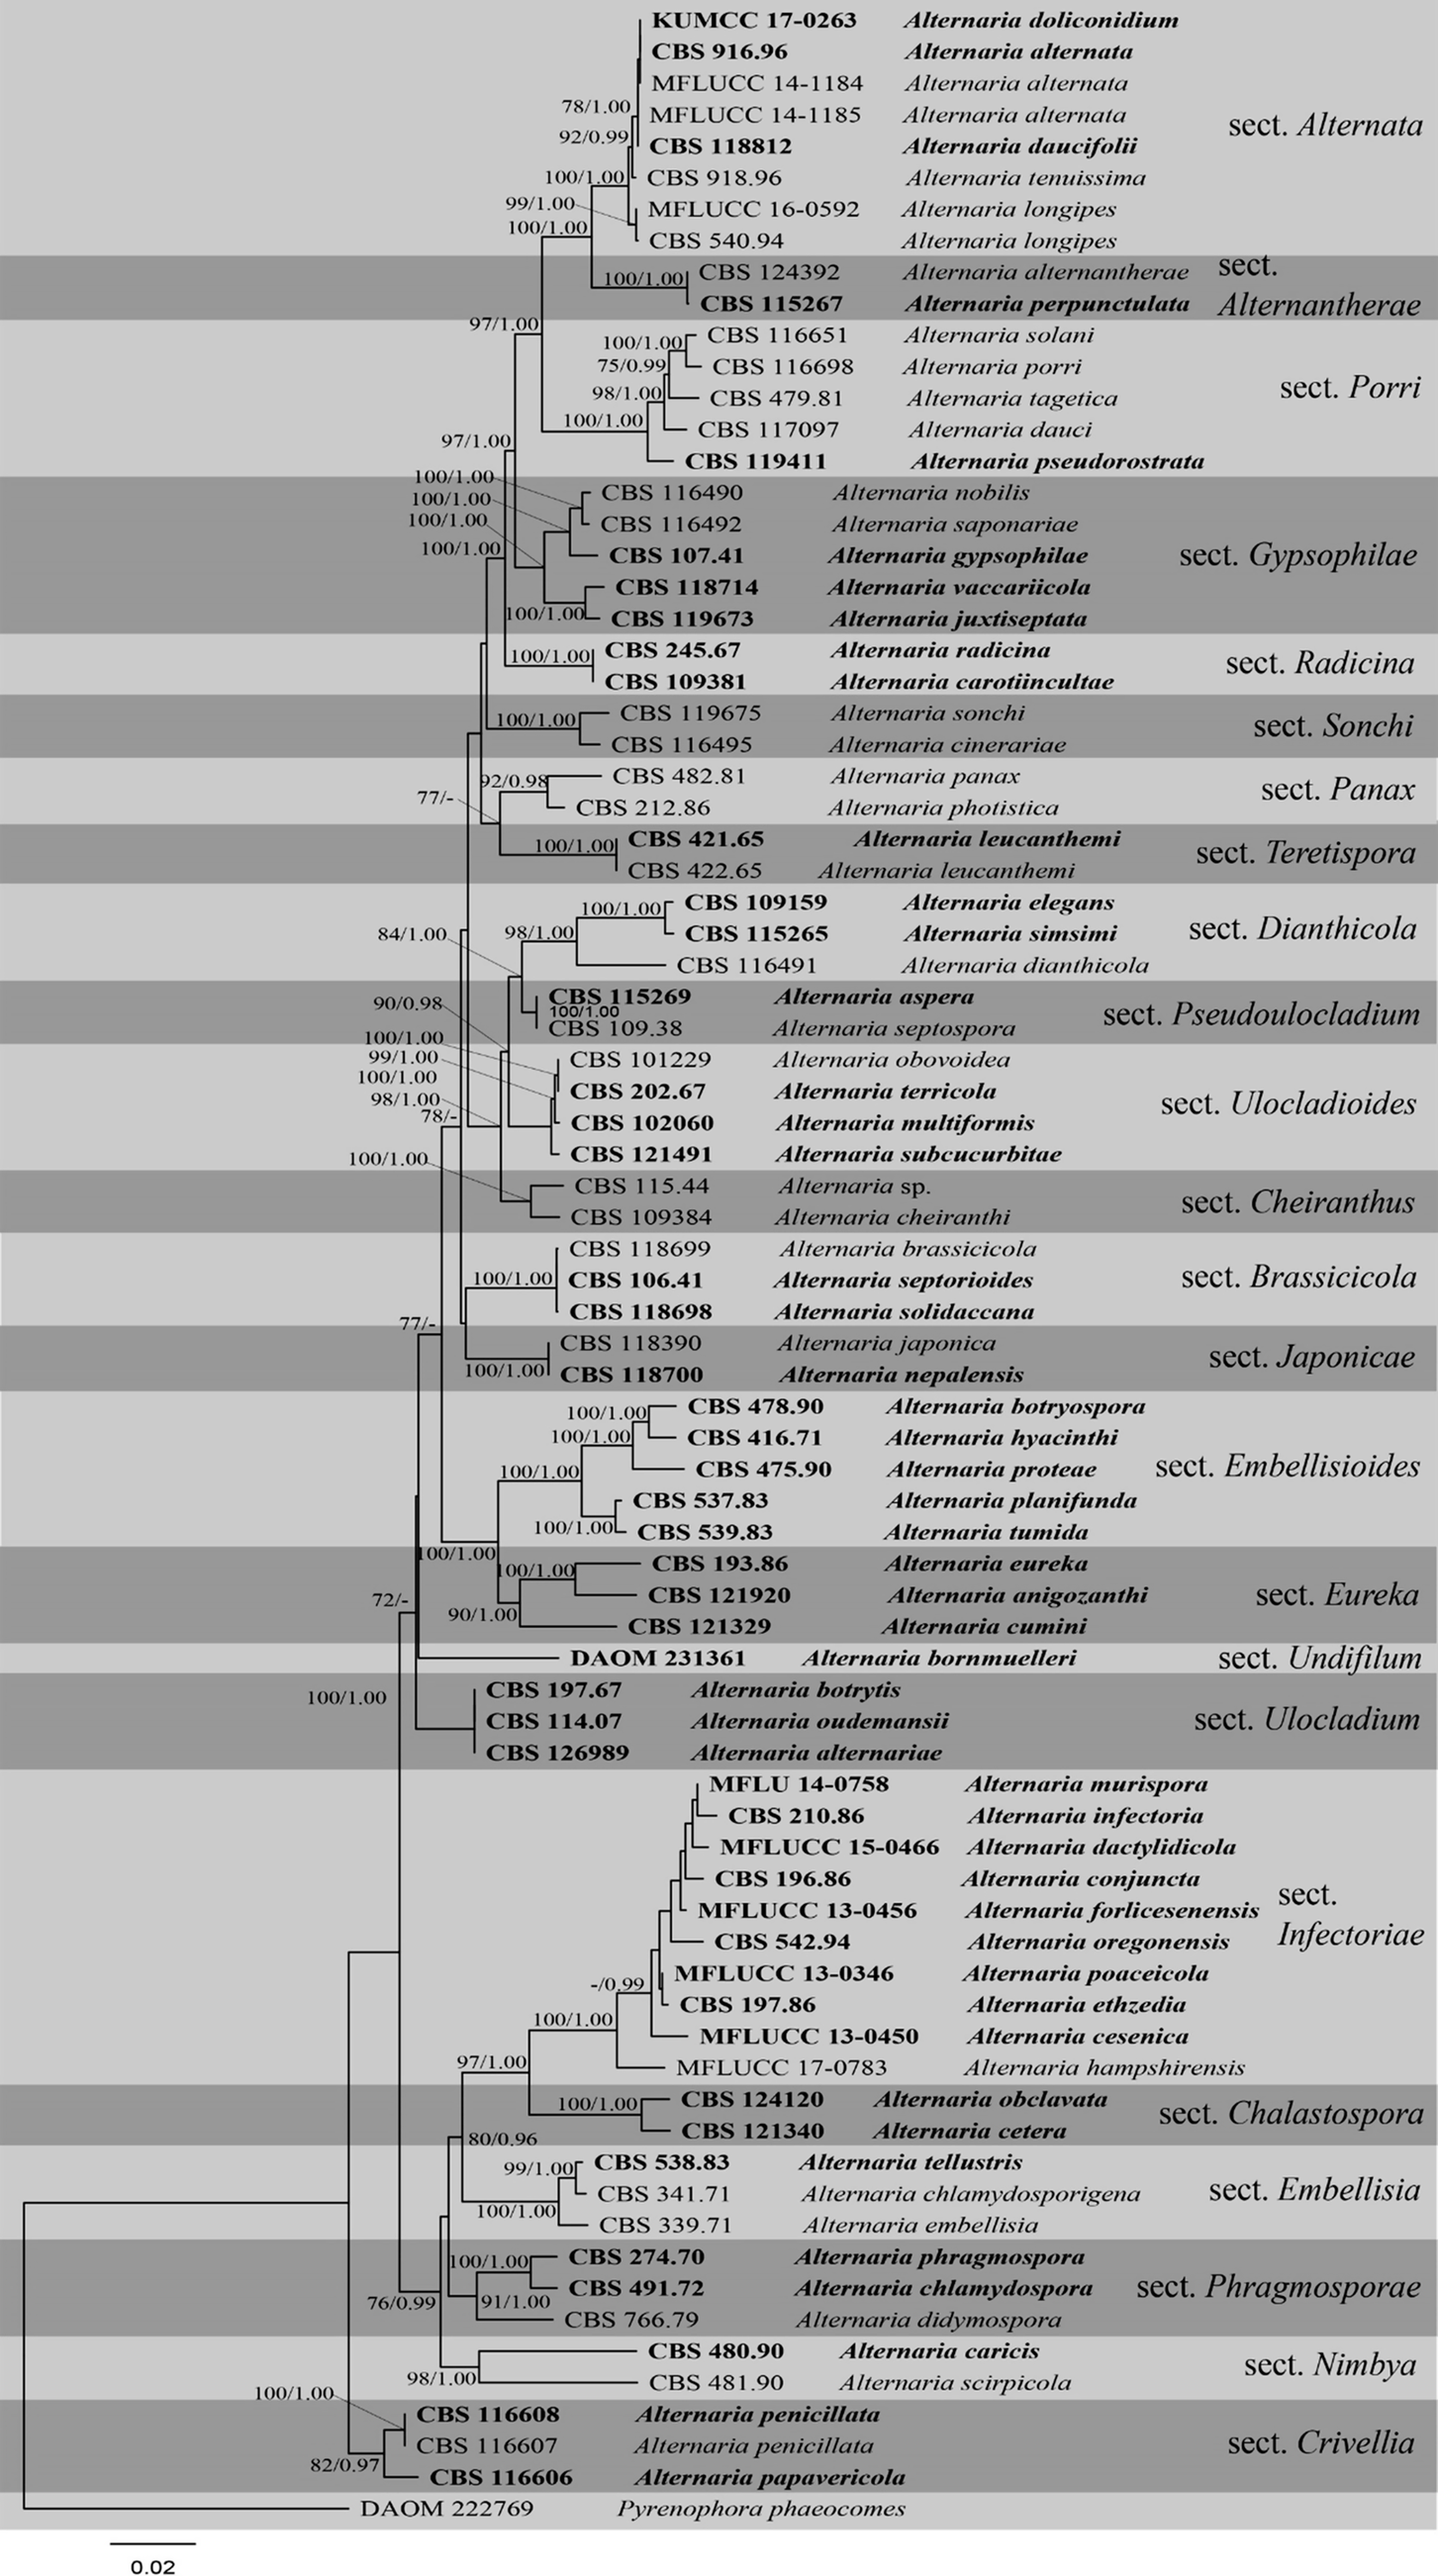 One stop shop II: taxonomic update with molecular phylogeny